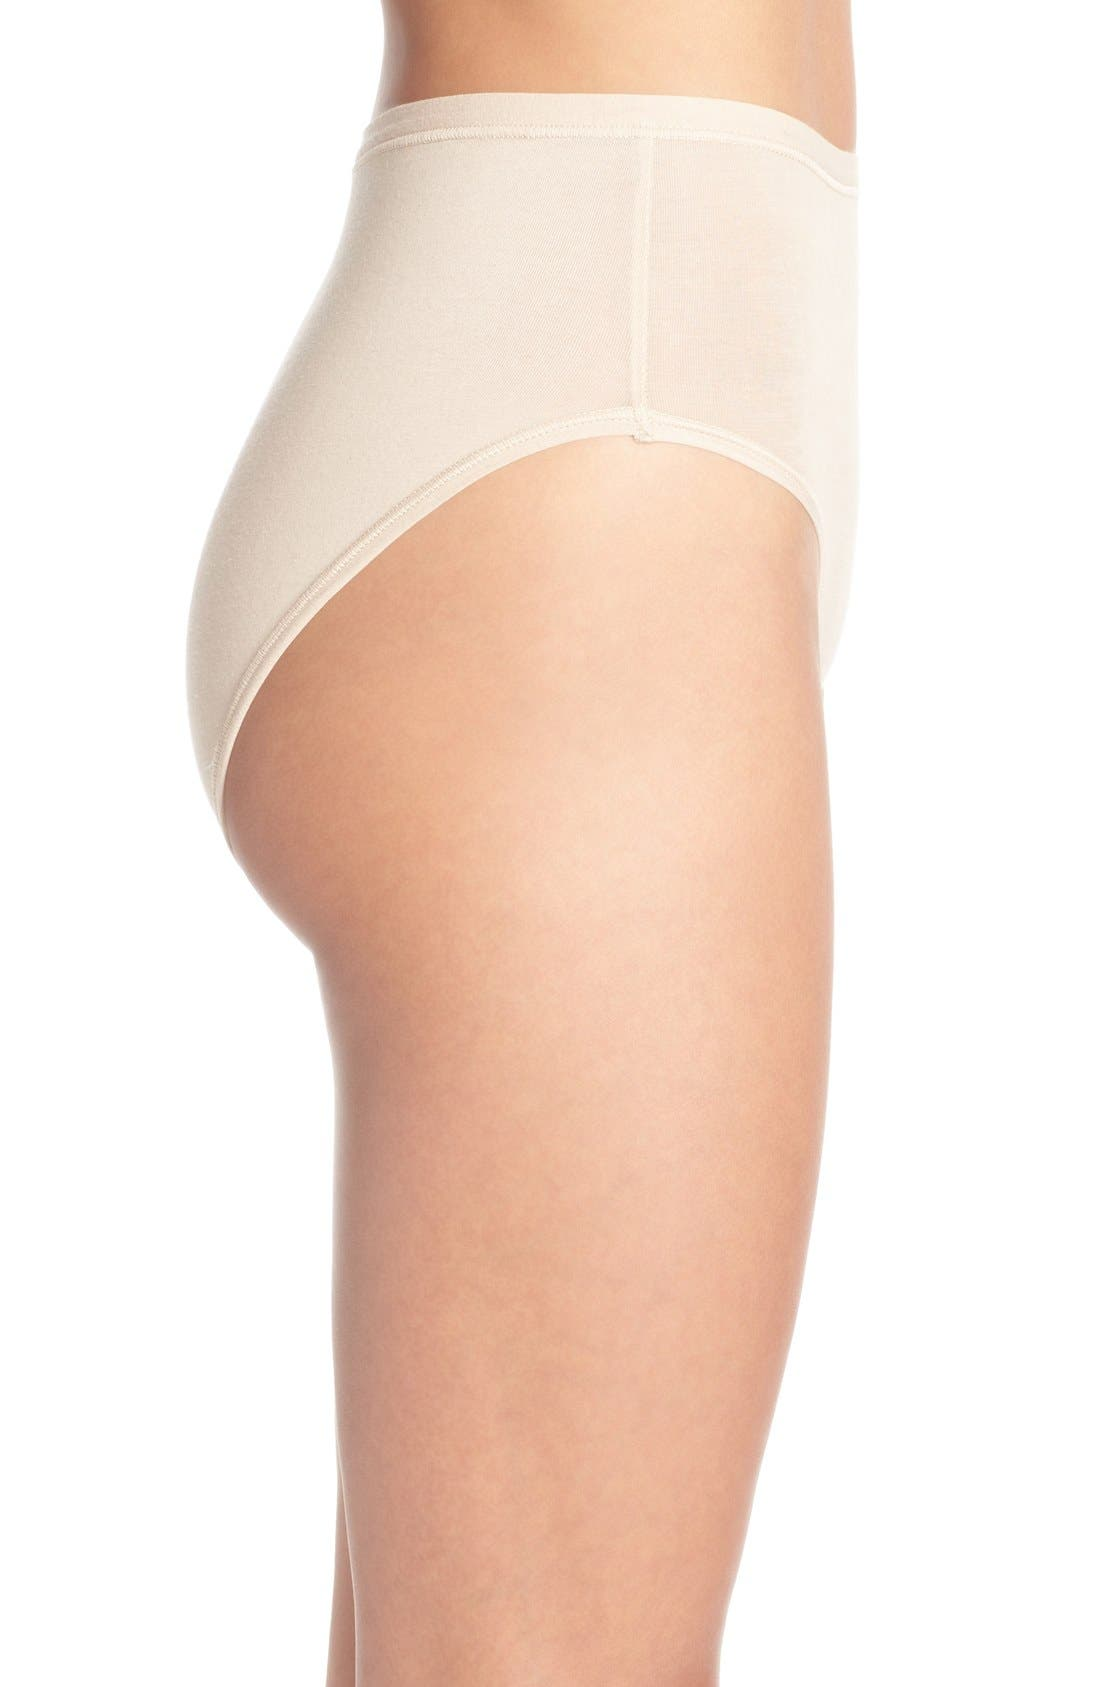 B Fitting High Cut Briefs,                             Alternate thumbnail 3, color,                             NUDE